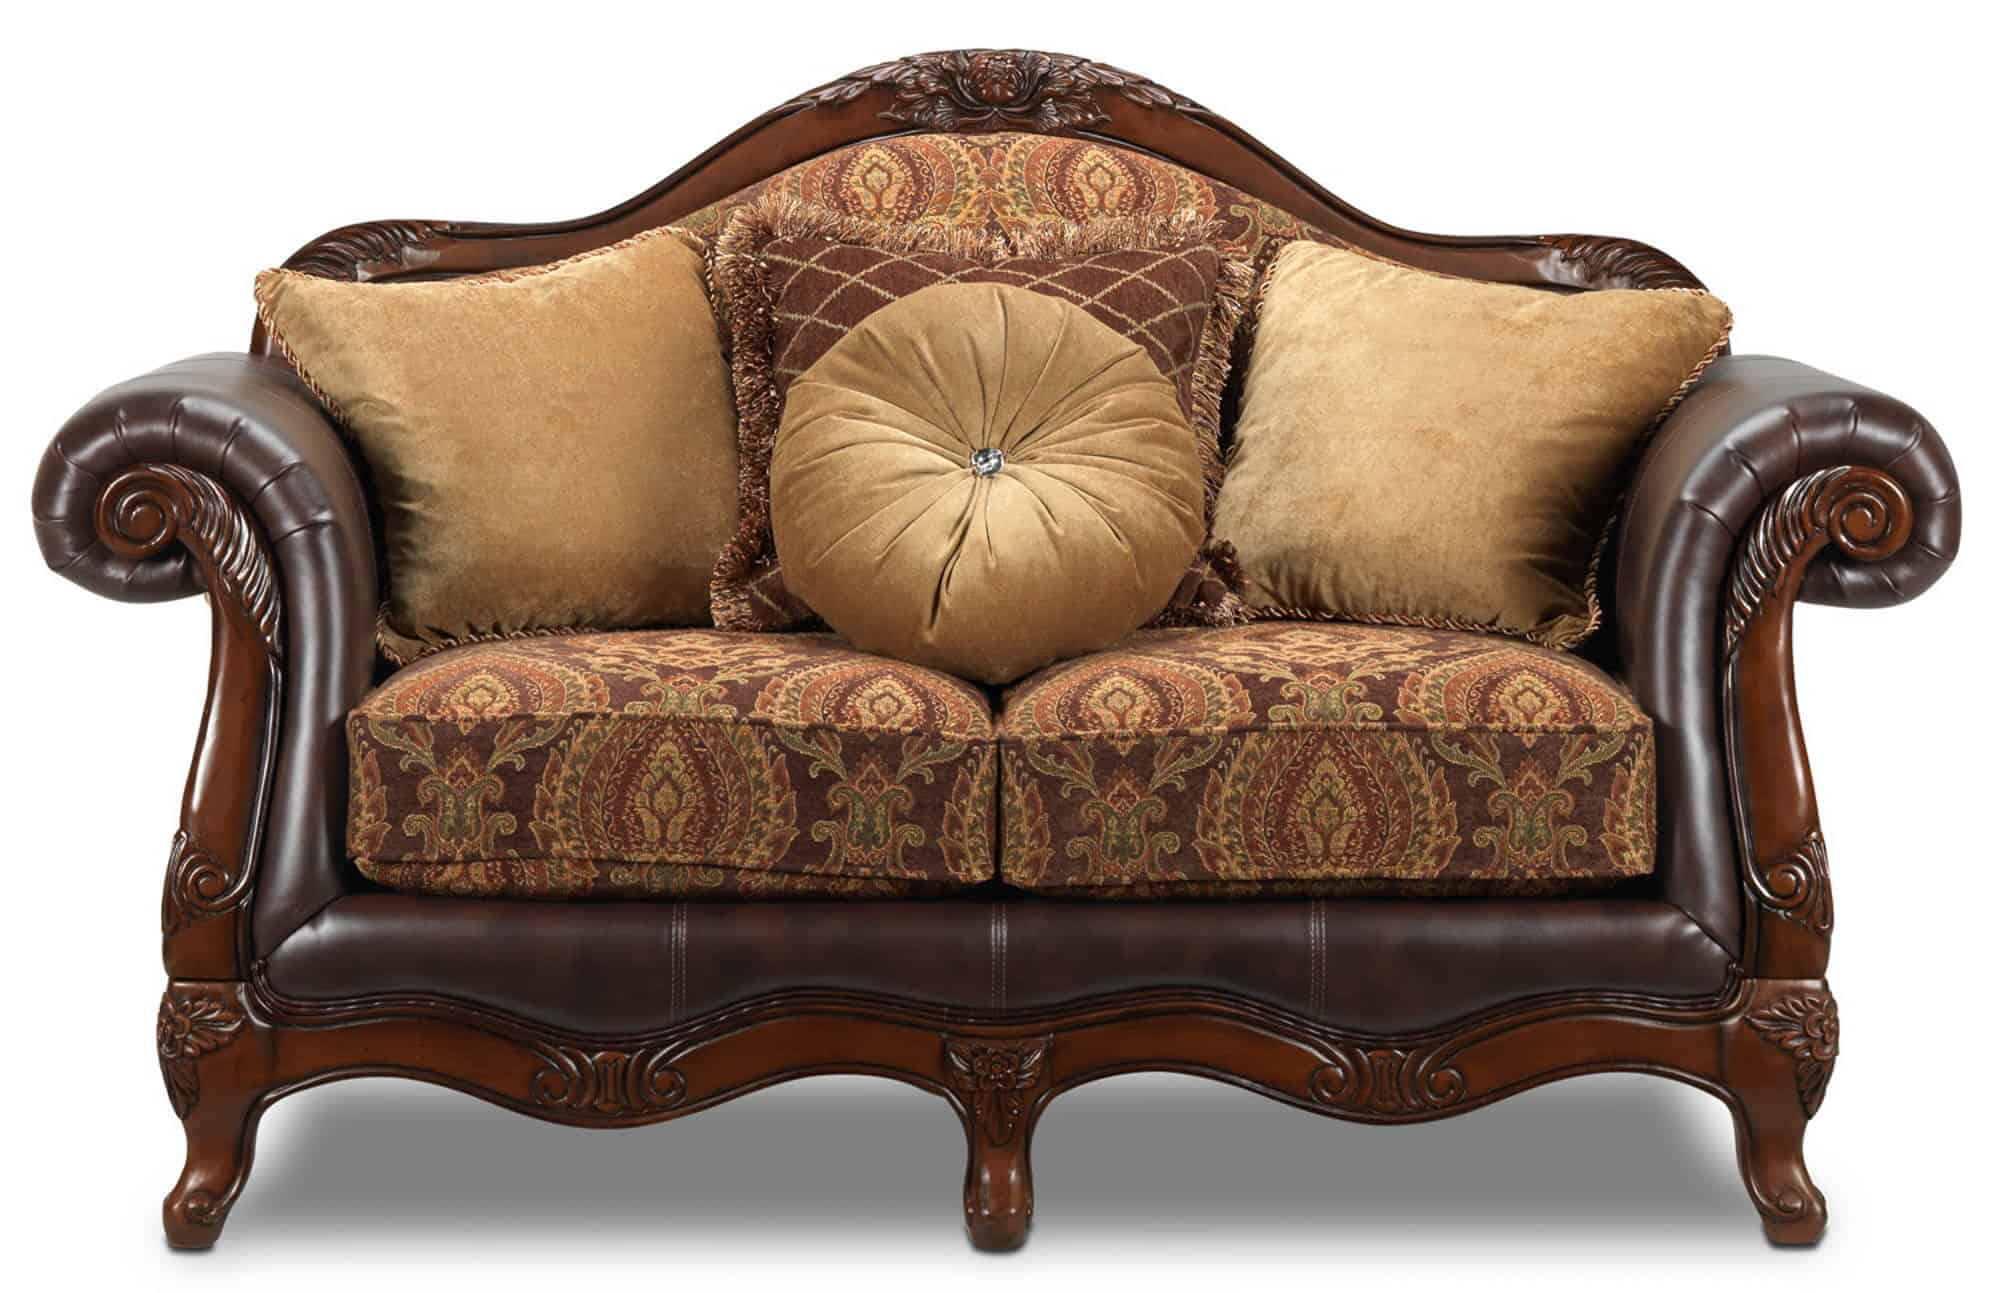 Queen Anne Living Room Furniture